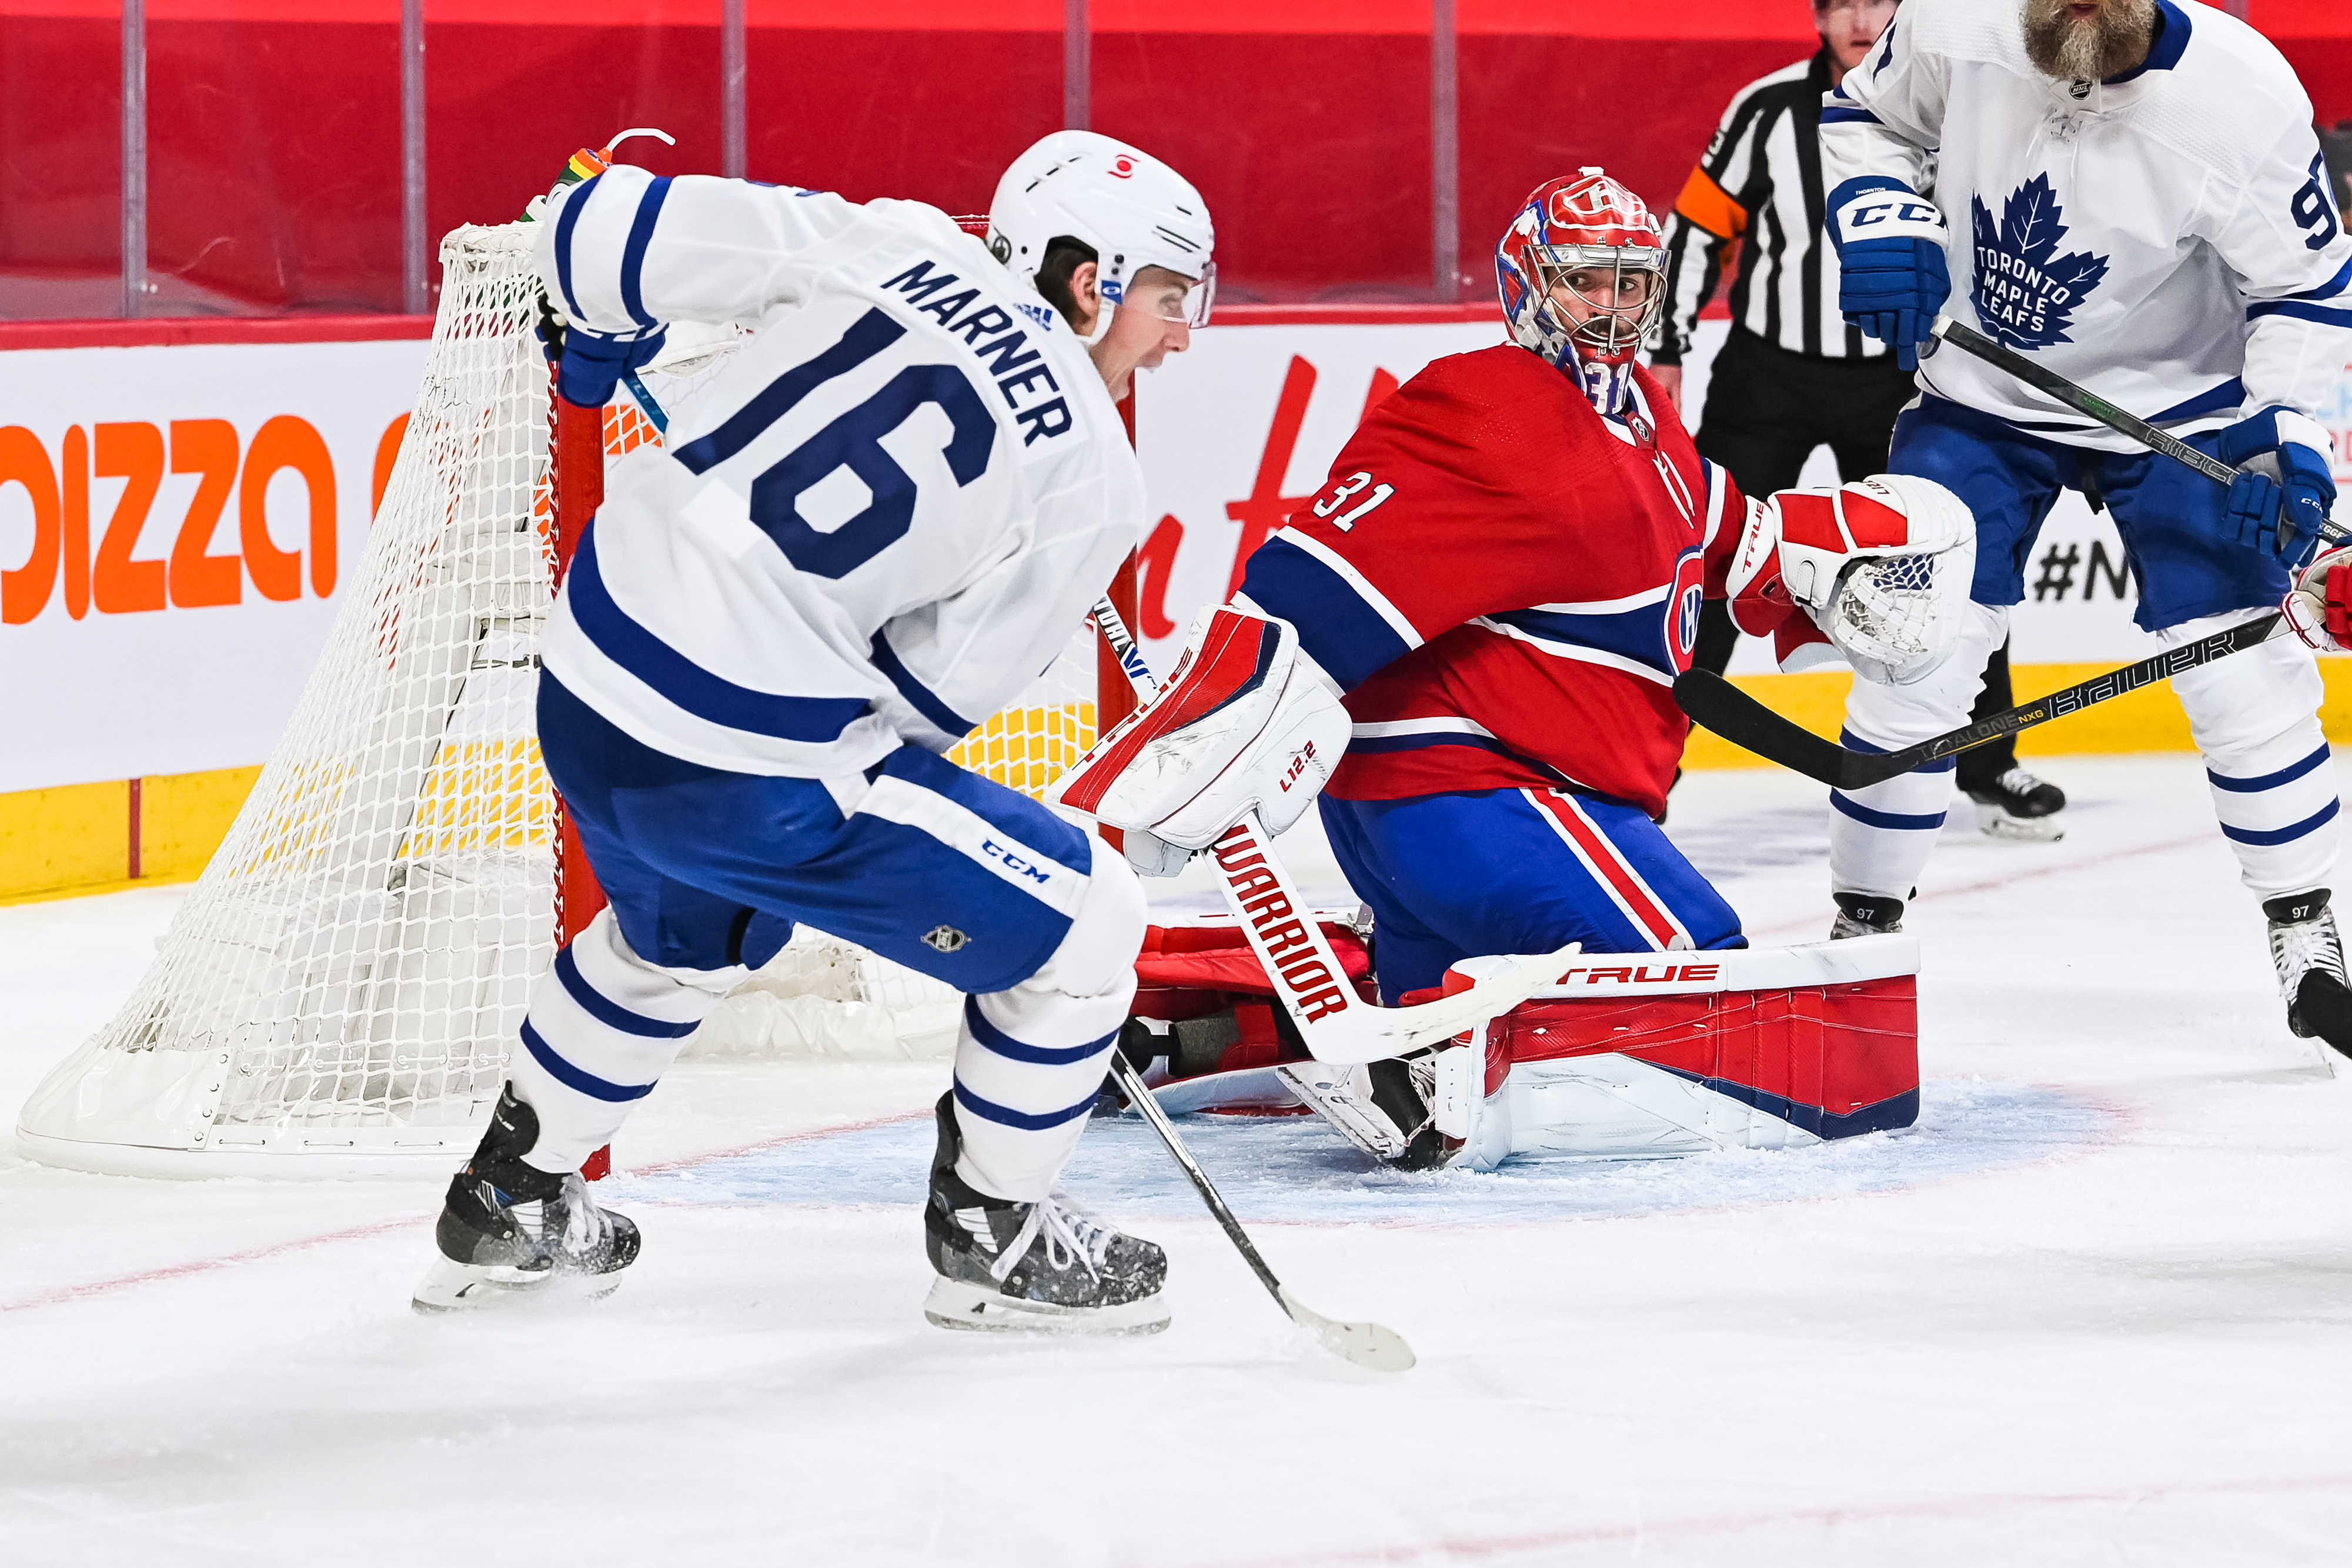 NHL: MAY 24 Stanley Cup Playoffs First Round - Maple Leafsat Canadiens